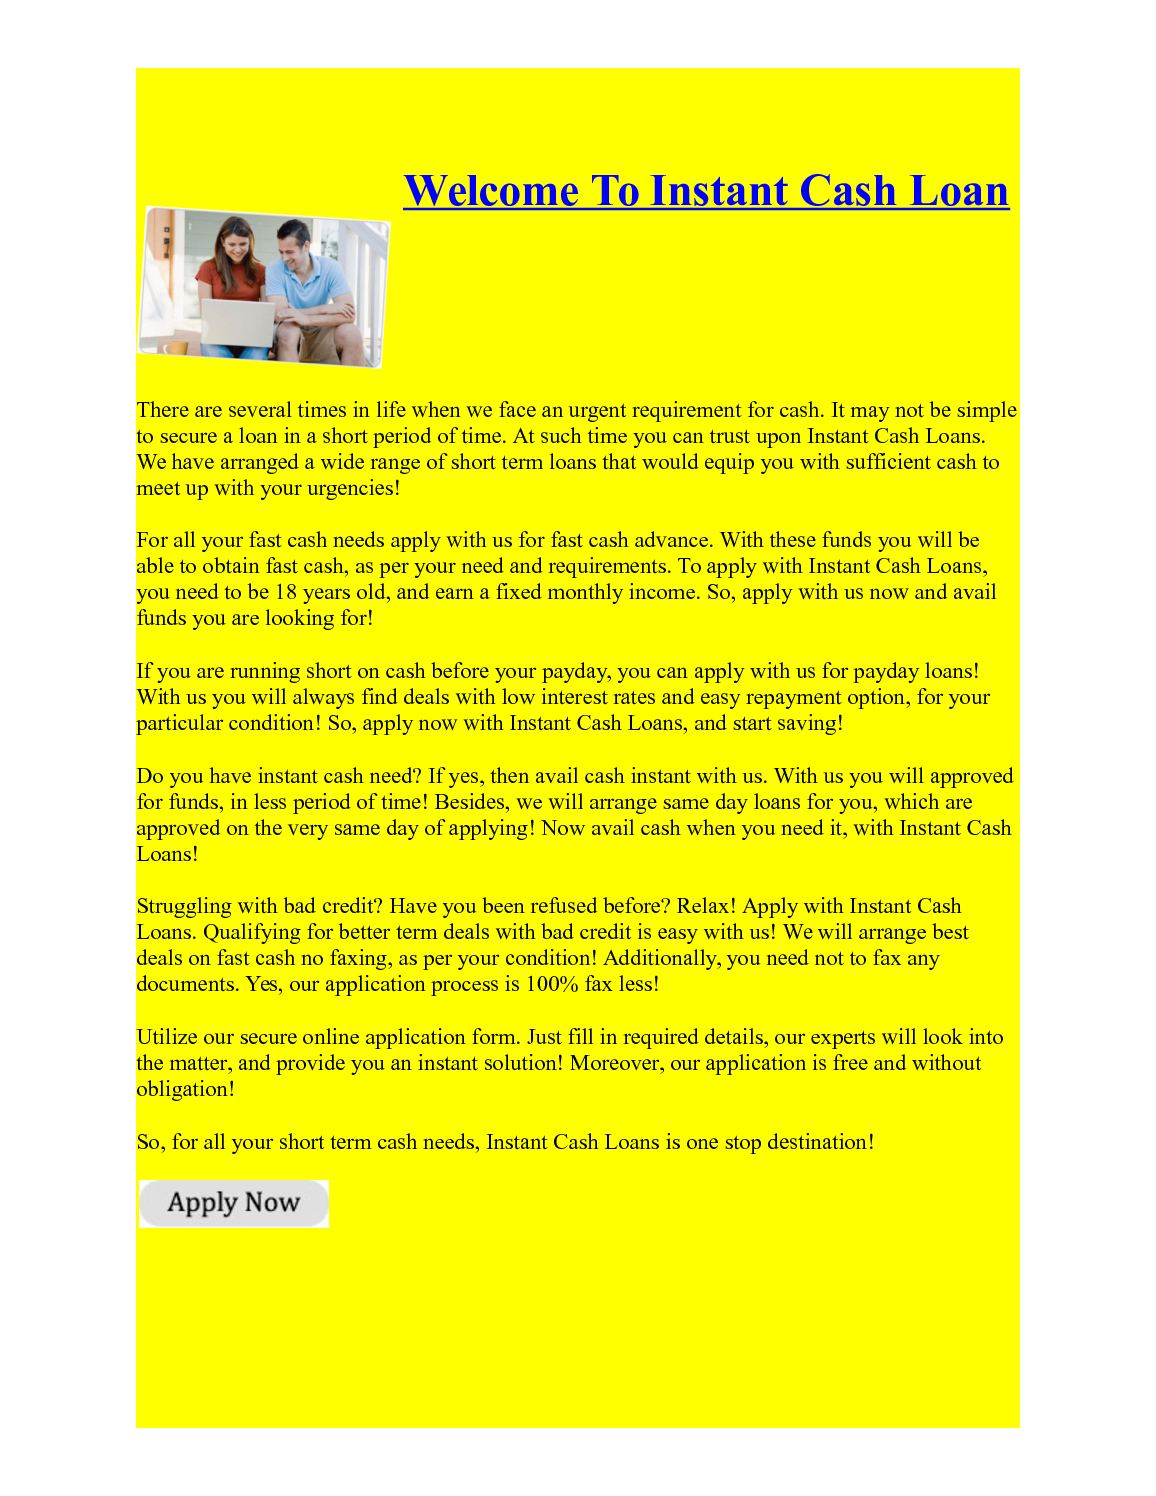 Highest paying payday loan affiliate photo 2